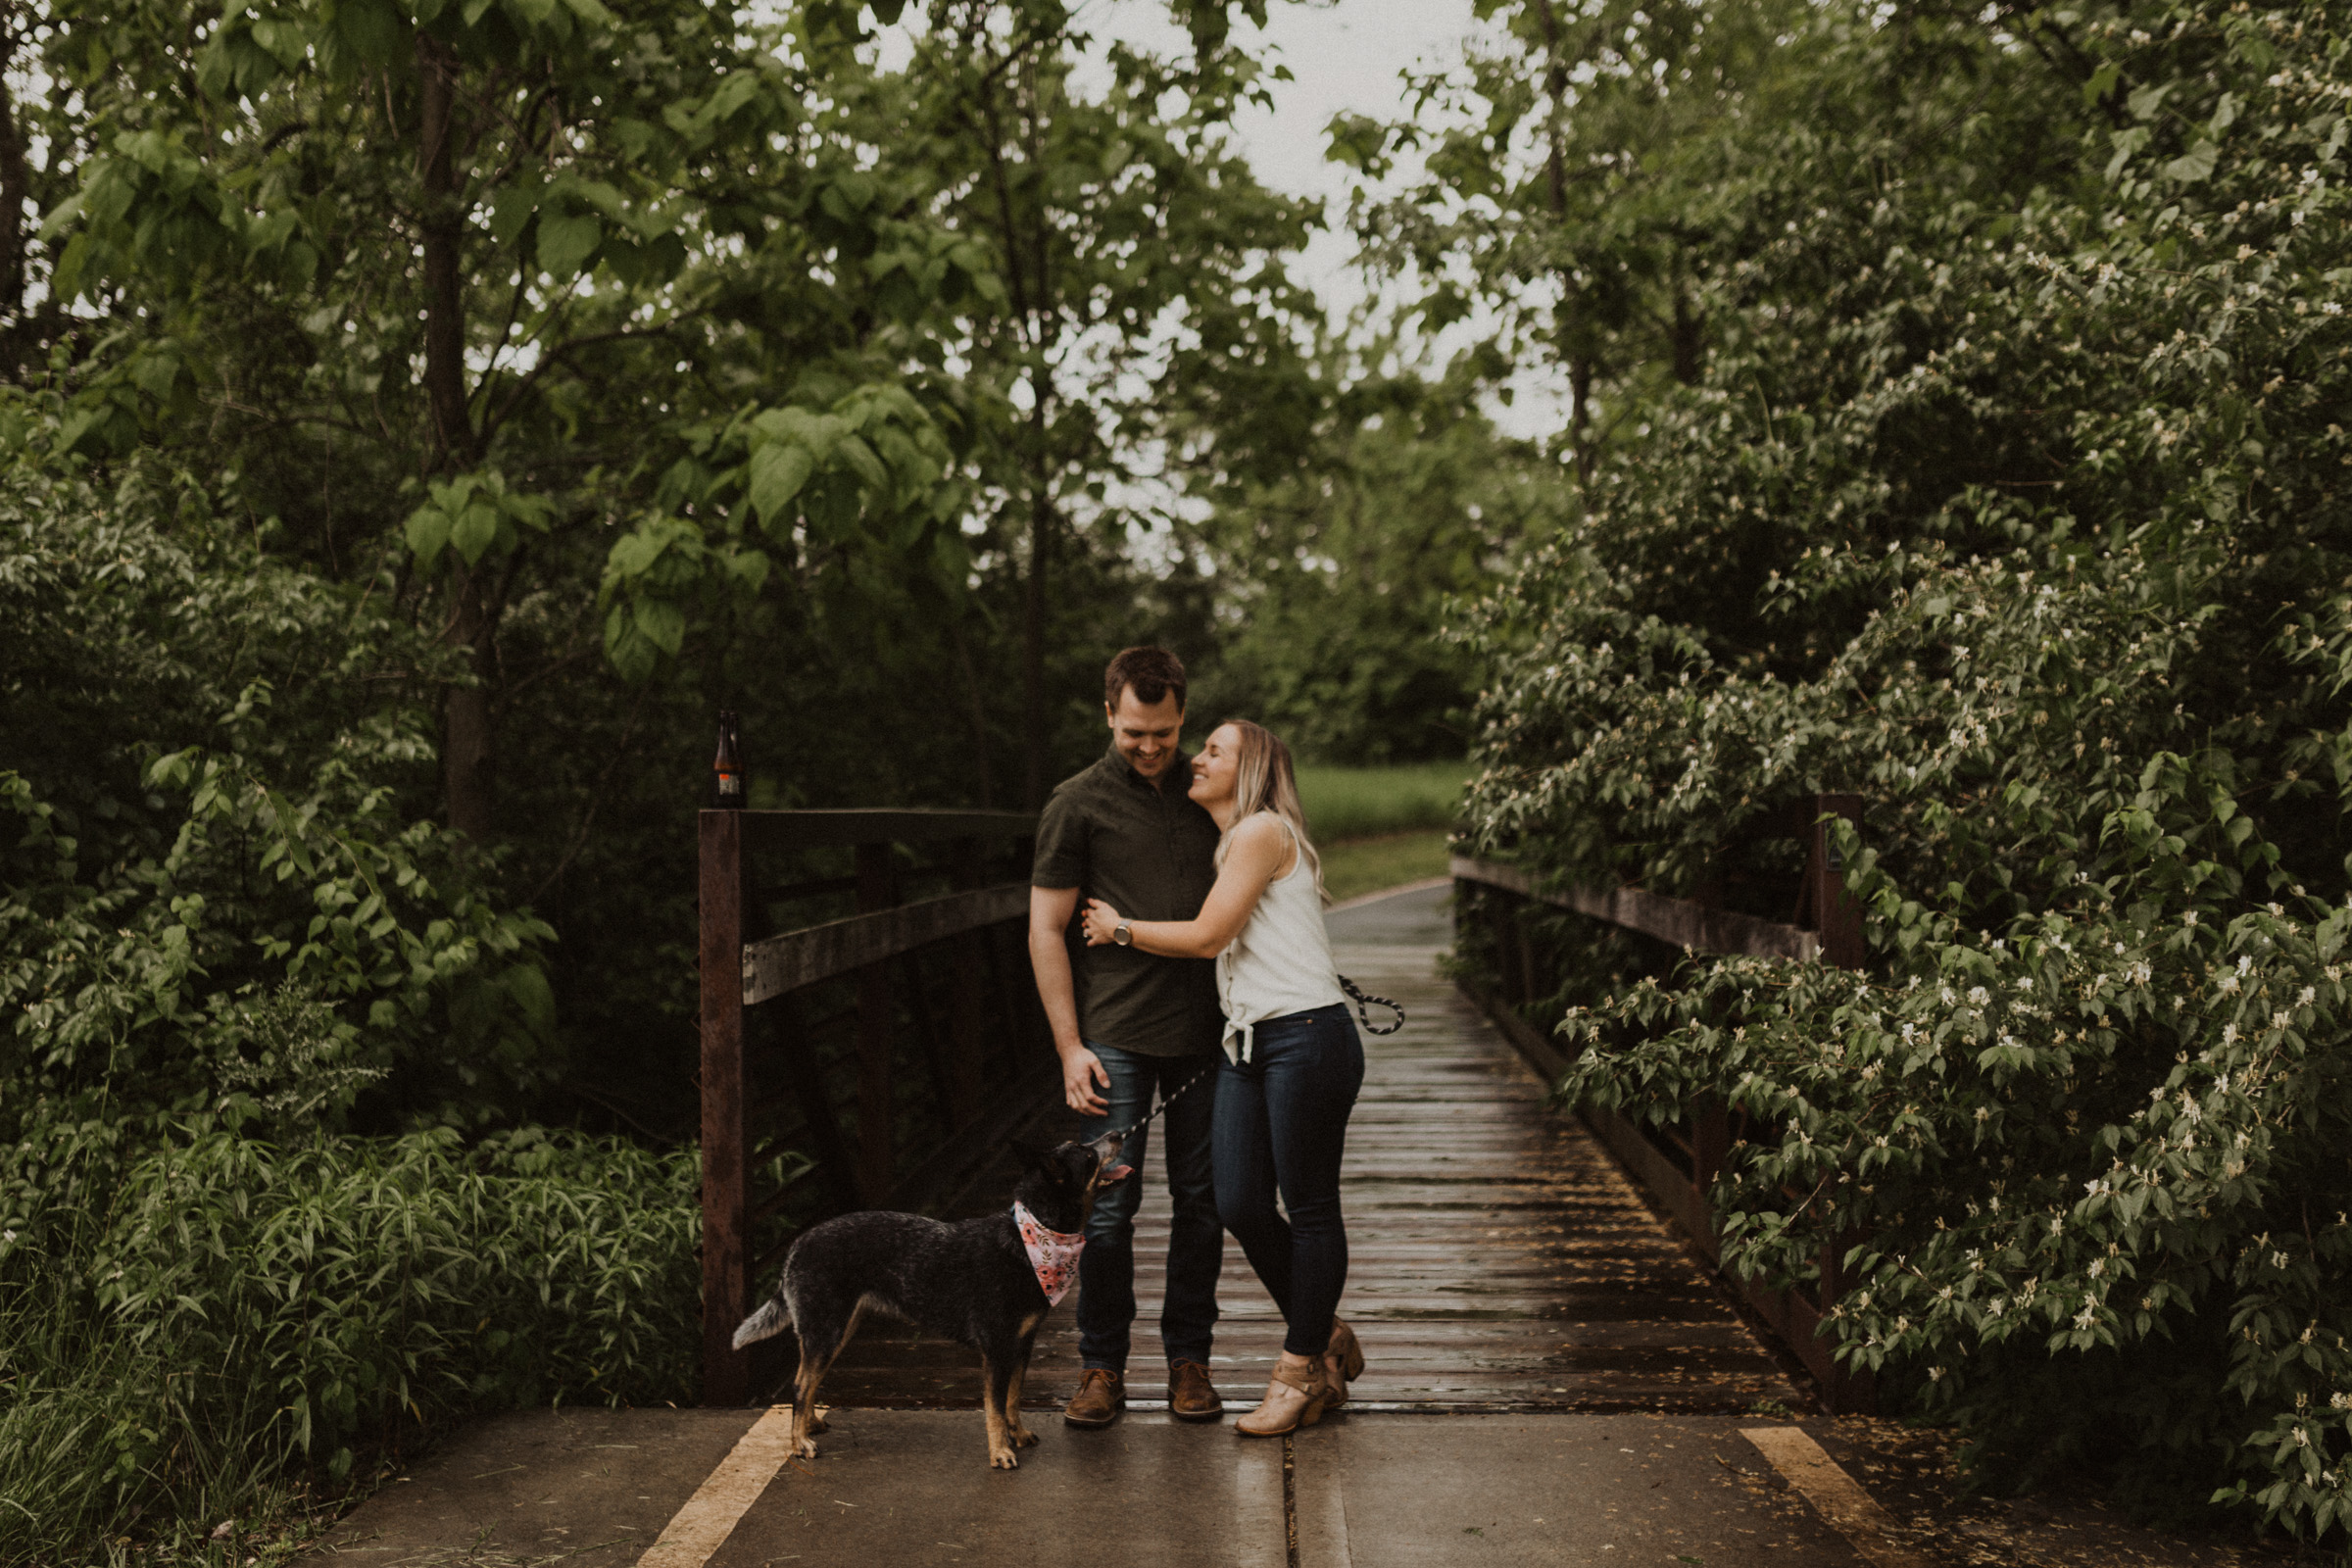 alyssa barletter photography shawnee mission park engagement session photographer sunset-3.jpg